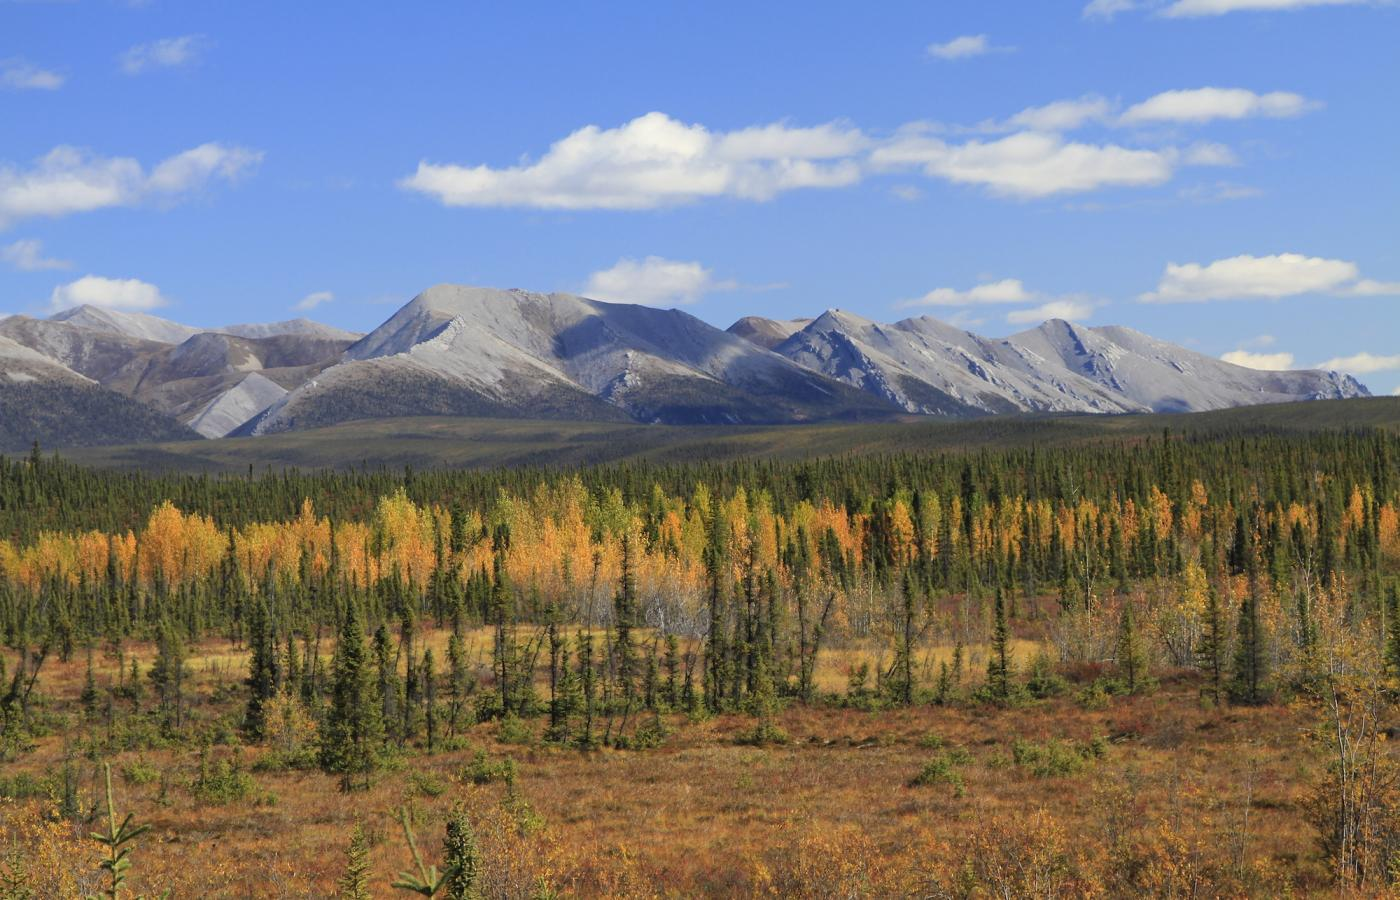 Northwest Territories landscape on a road trip driving the Dempster Highway in the fall season